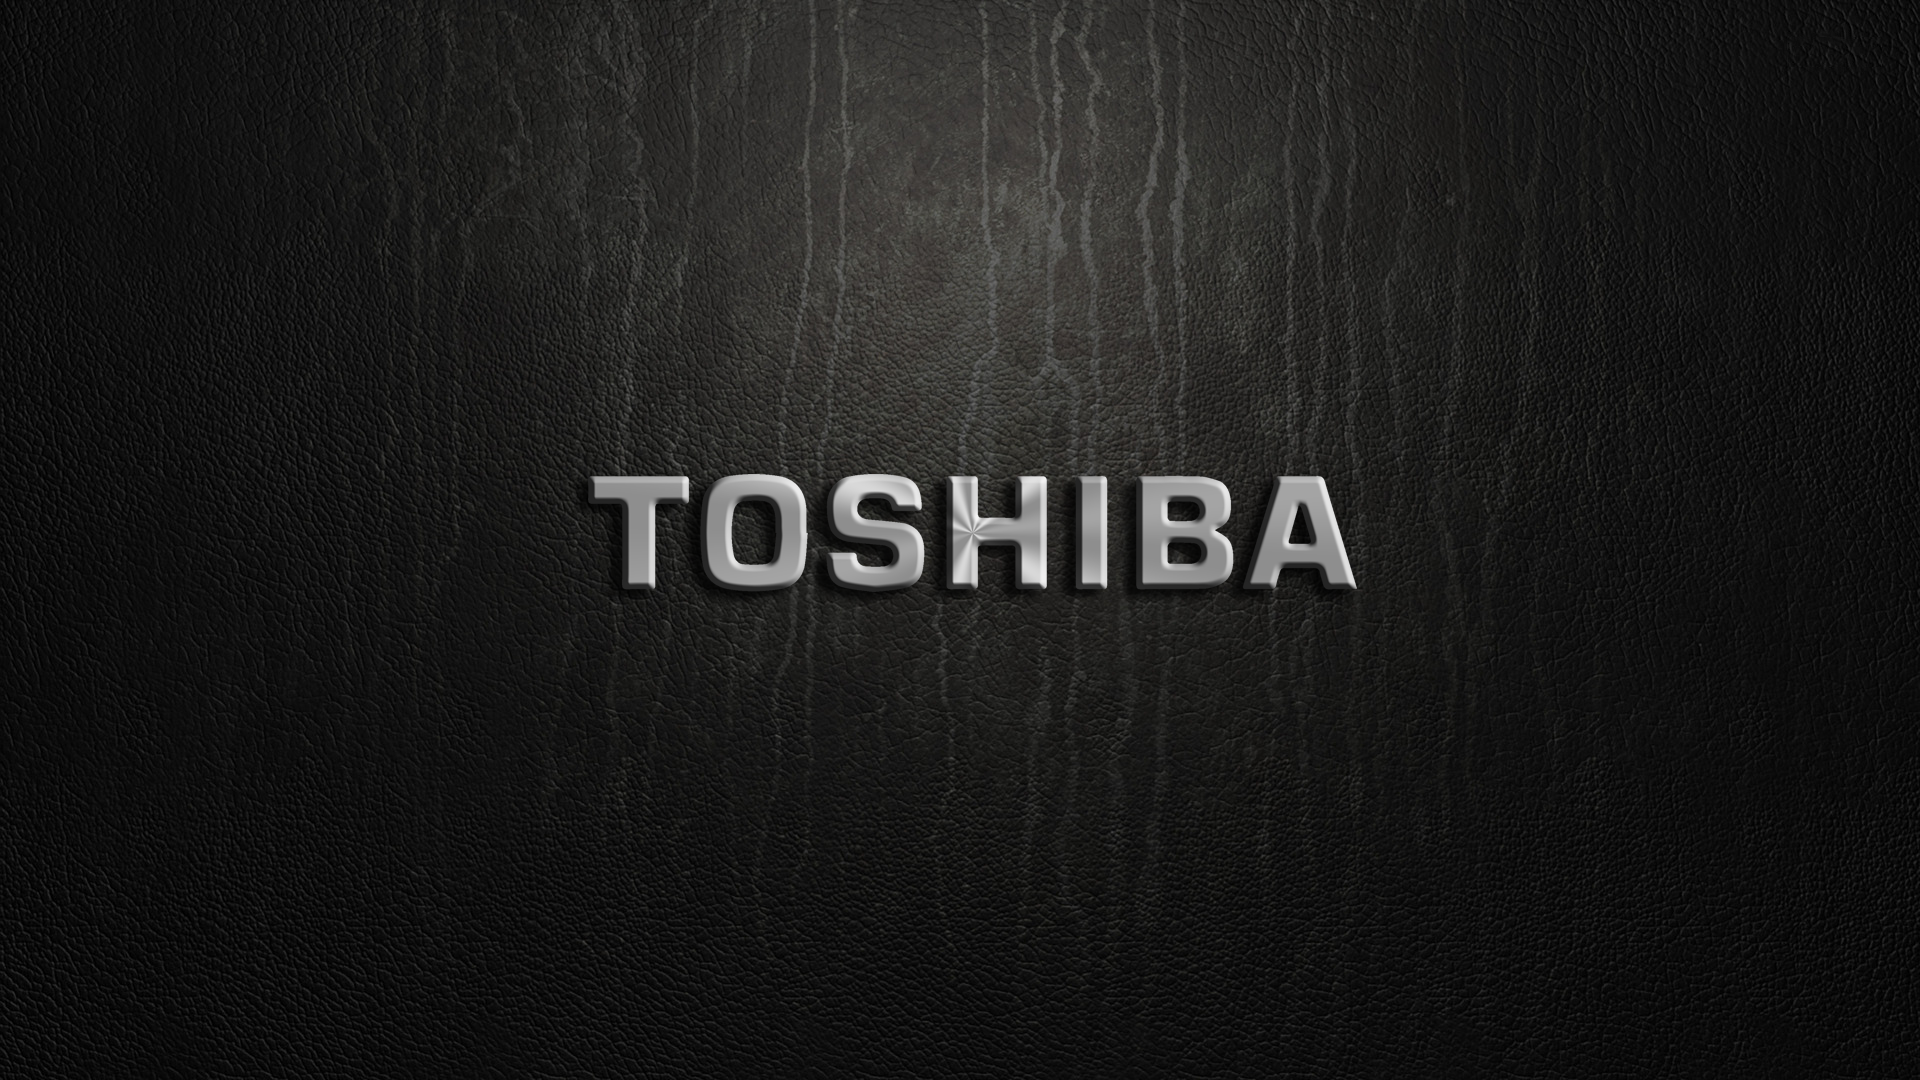 the gallery for gt toshiba logo wallpaper